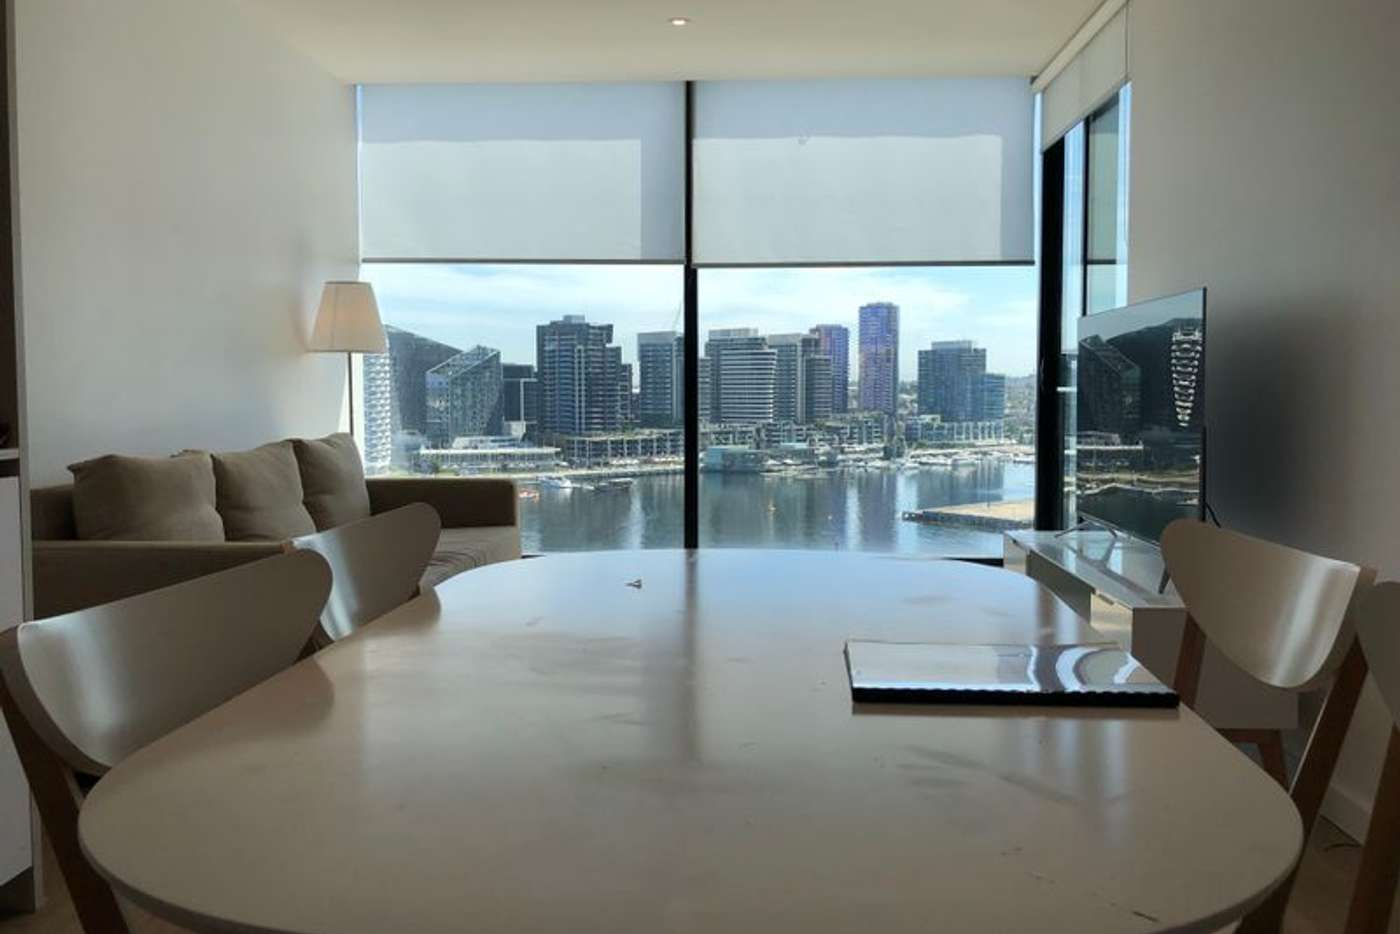 Main view of Homely apartment listing, 1305/915 Collins Street, Docklands VIC 3008